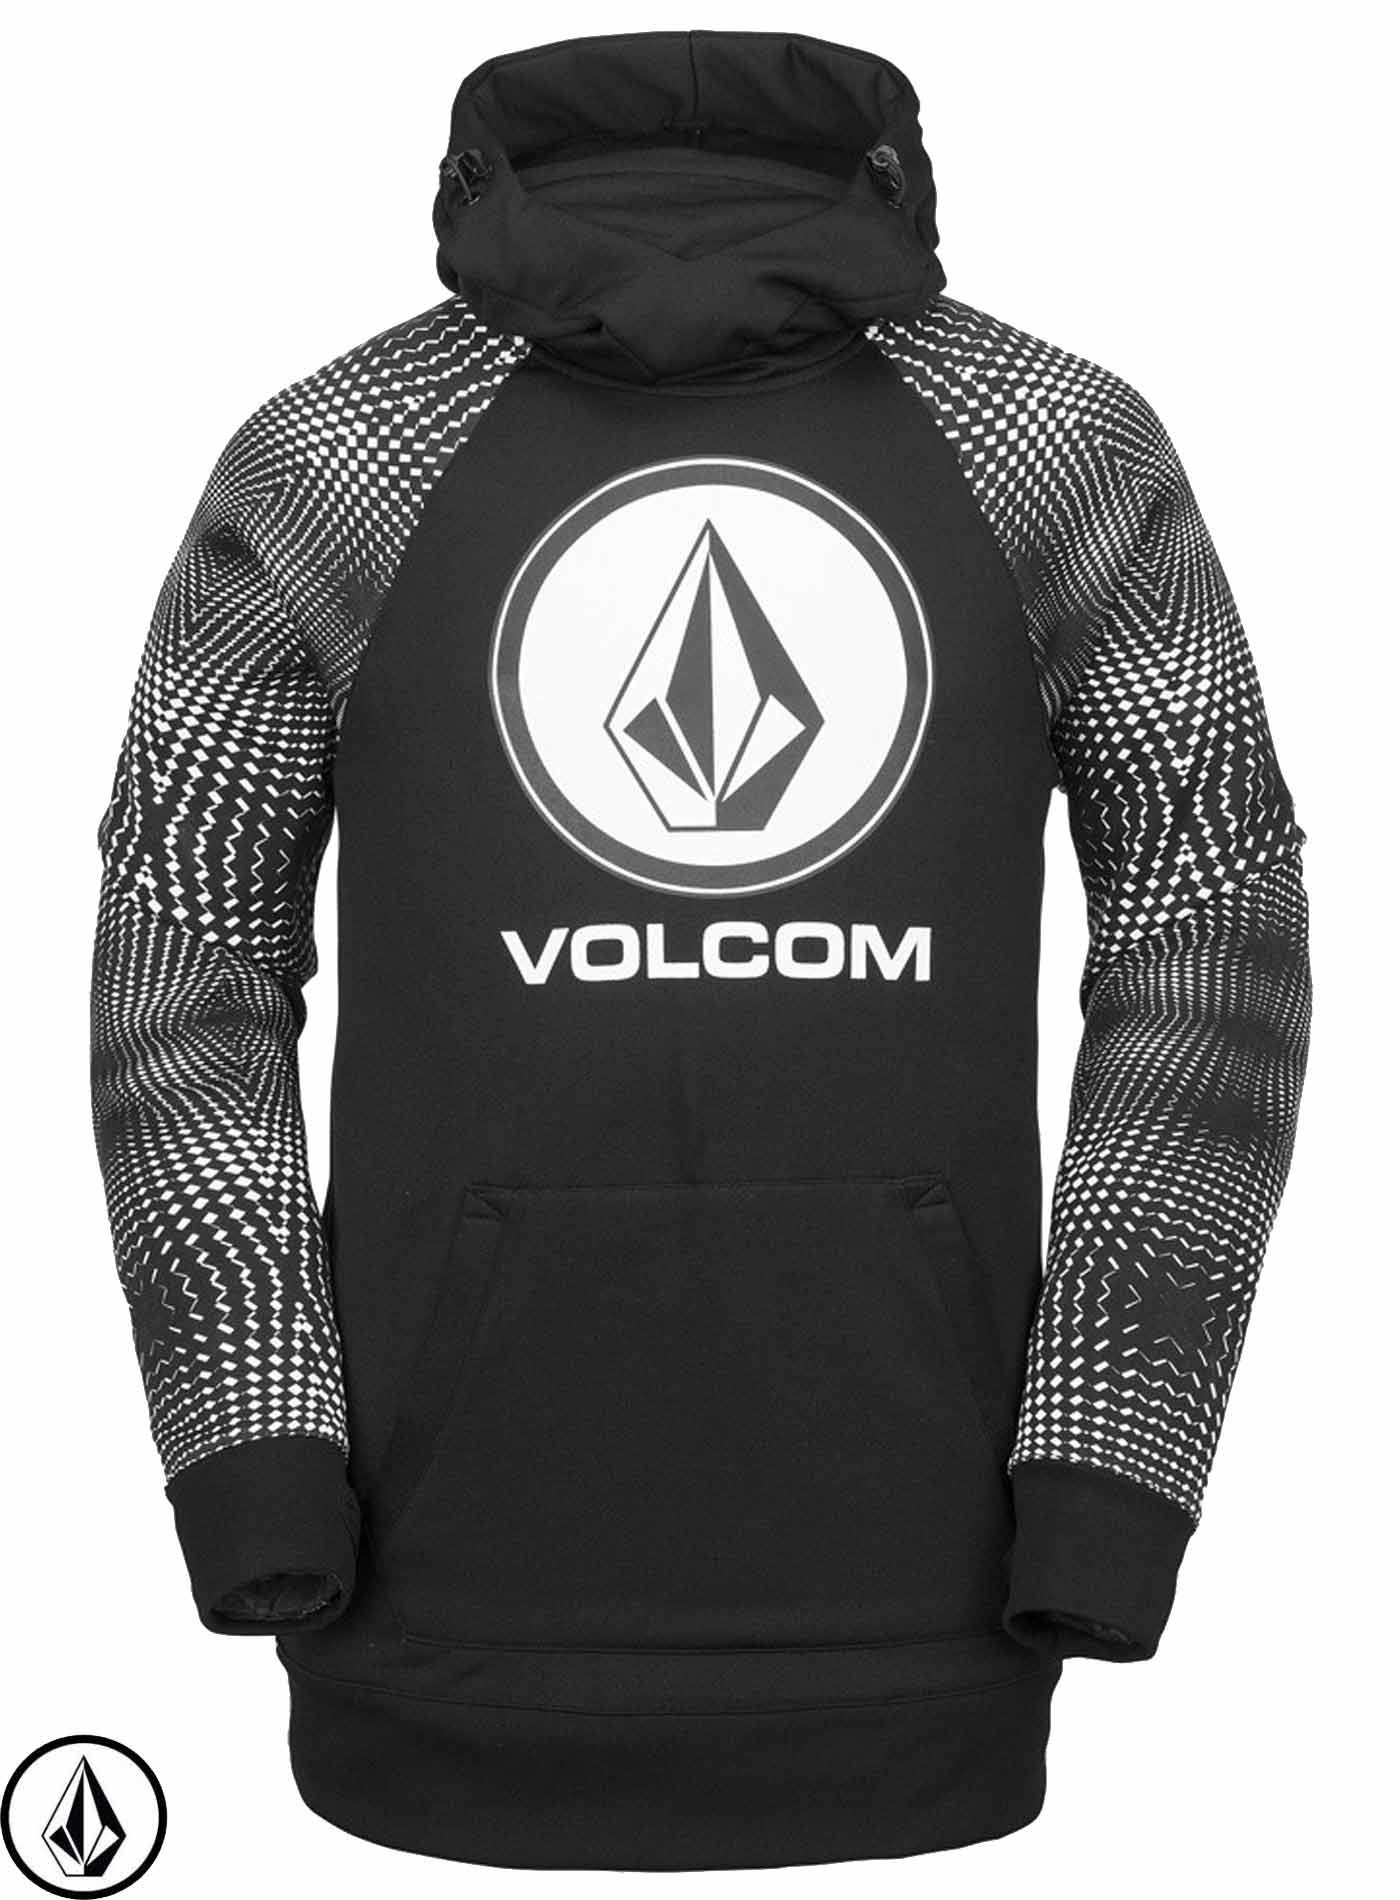 free delivery buying now detailing Volcom Hydro Riding Black White Hoodie